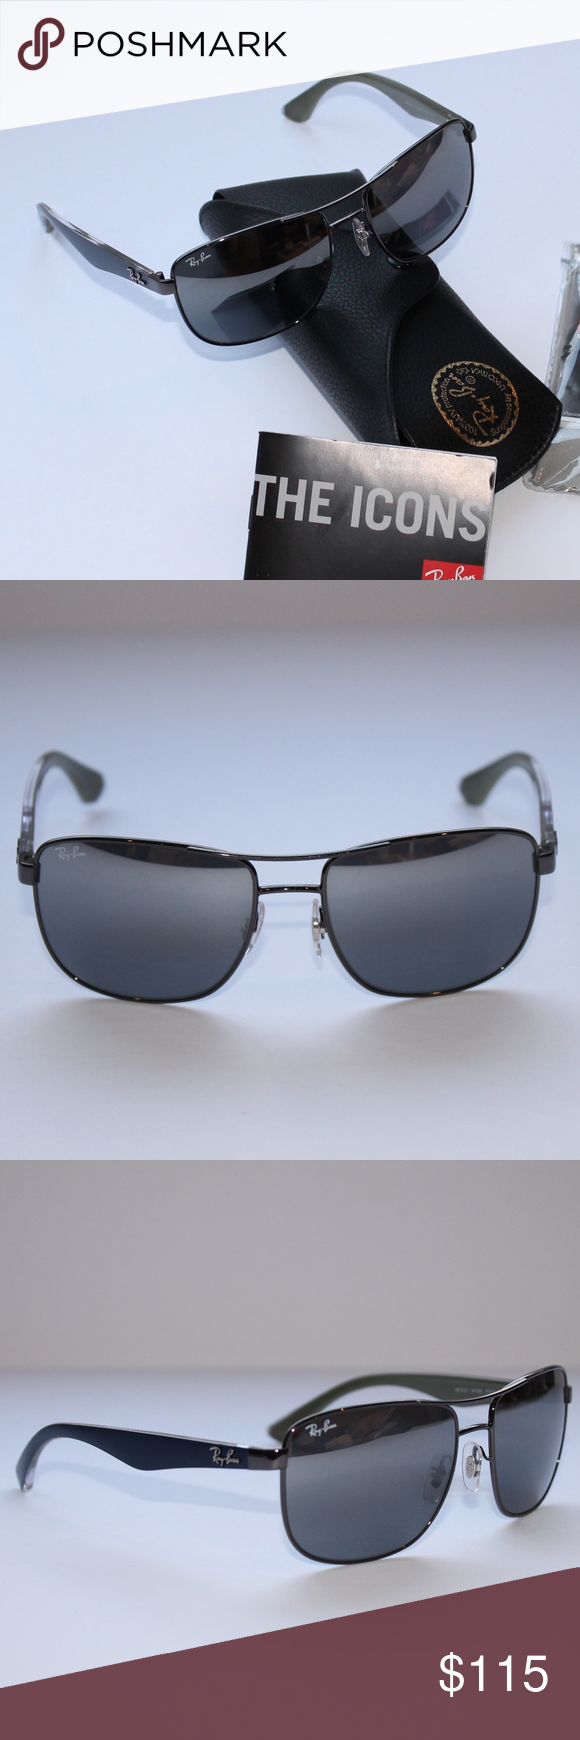 7682ae73bd Ray-Ban RB3533 Grey Gradient Mirror Brand New 100% Authentic These  lightweight square shaped